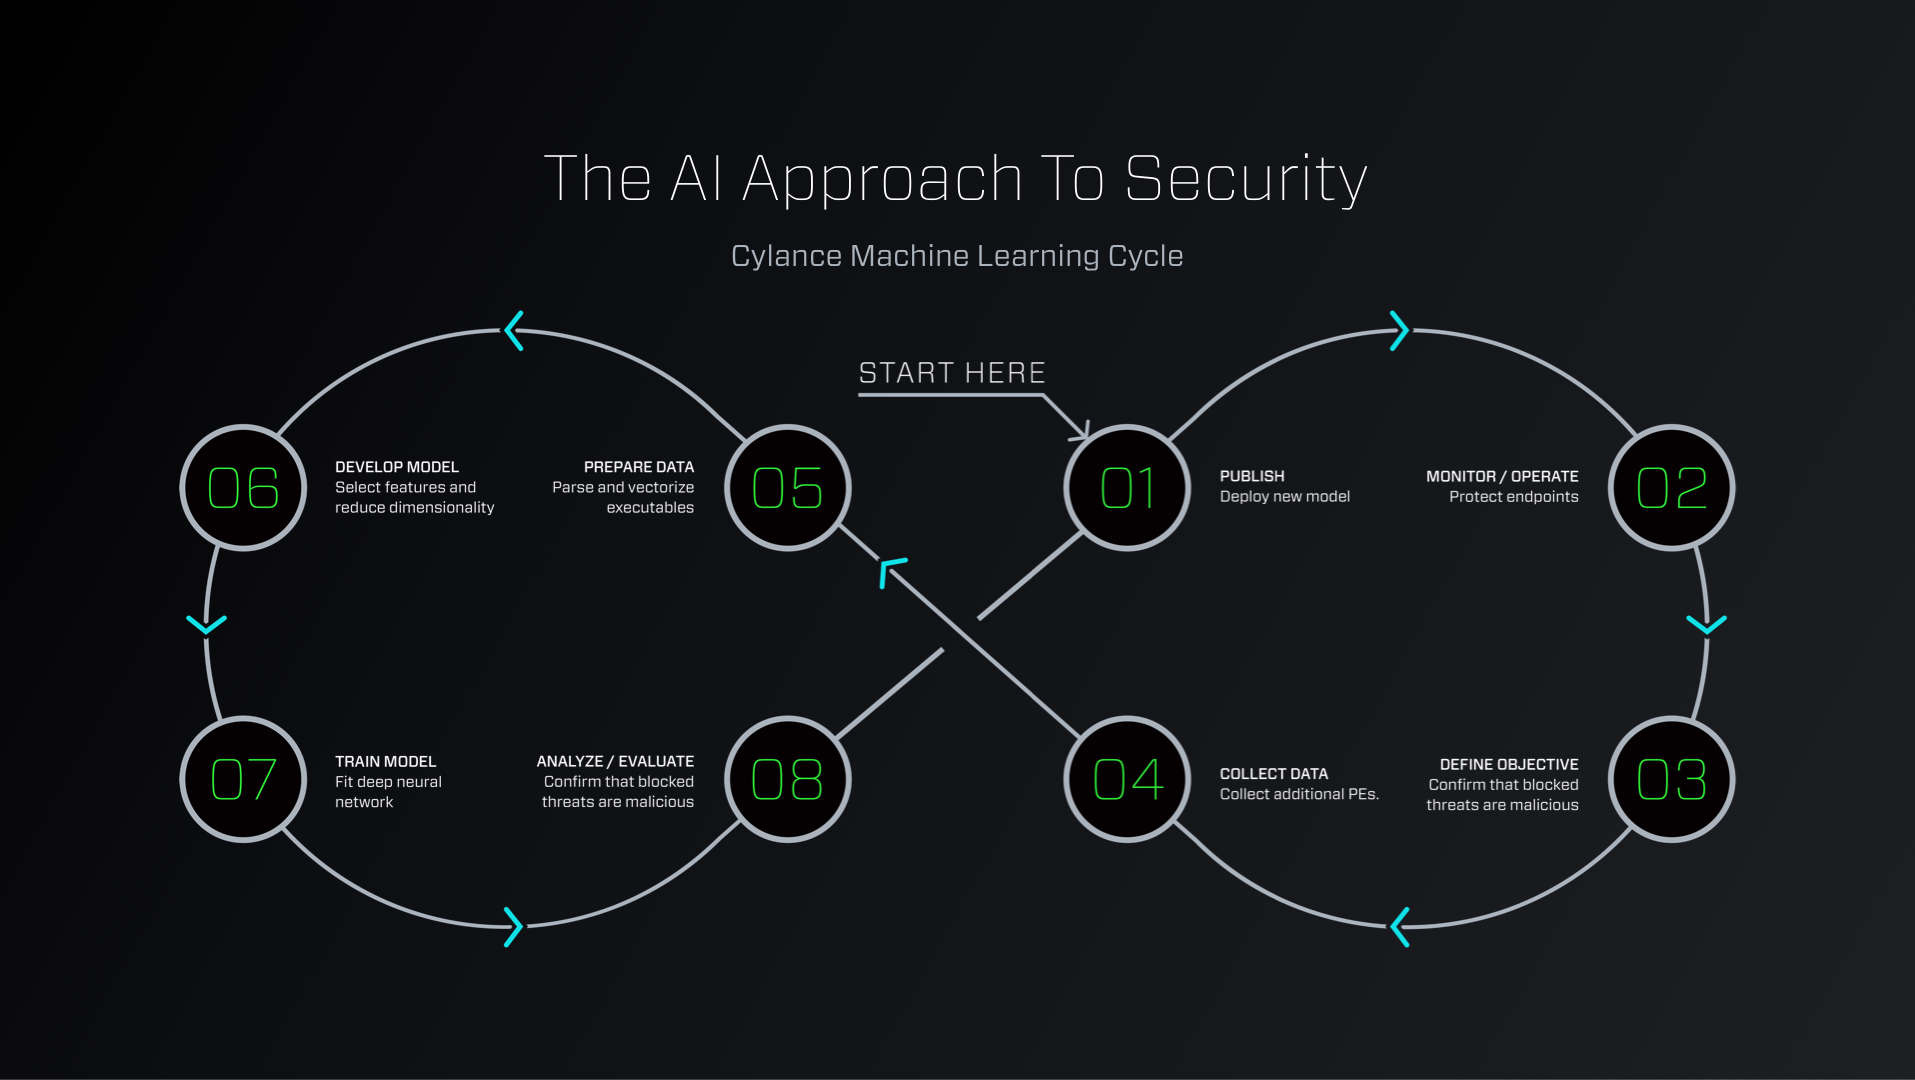 01.04_The_AI_Approach_To_Security.png